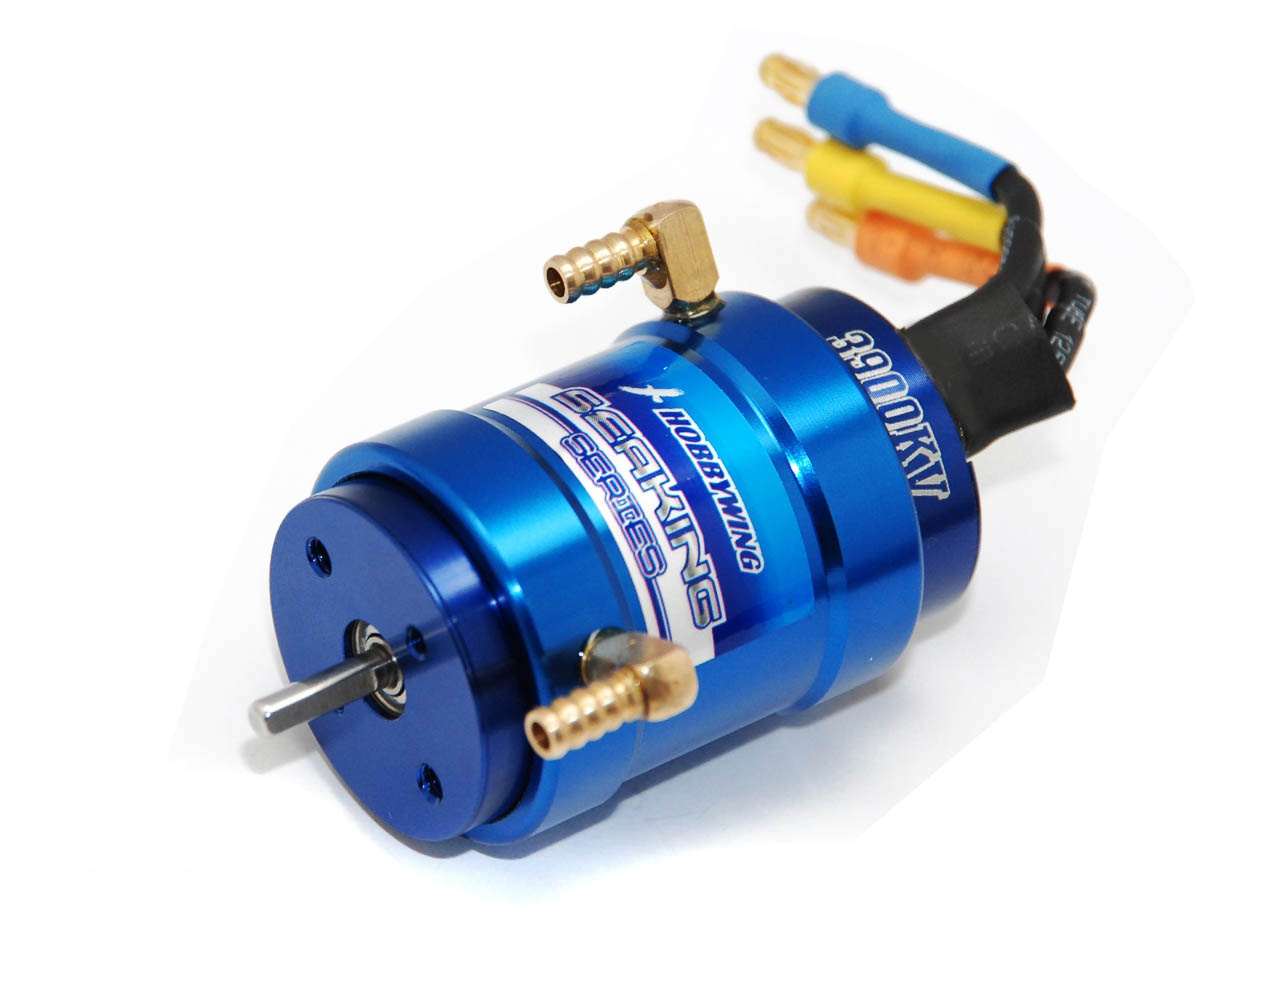 Seaking Brushless Motor 3900KV-2848SL